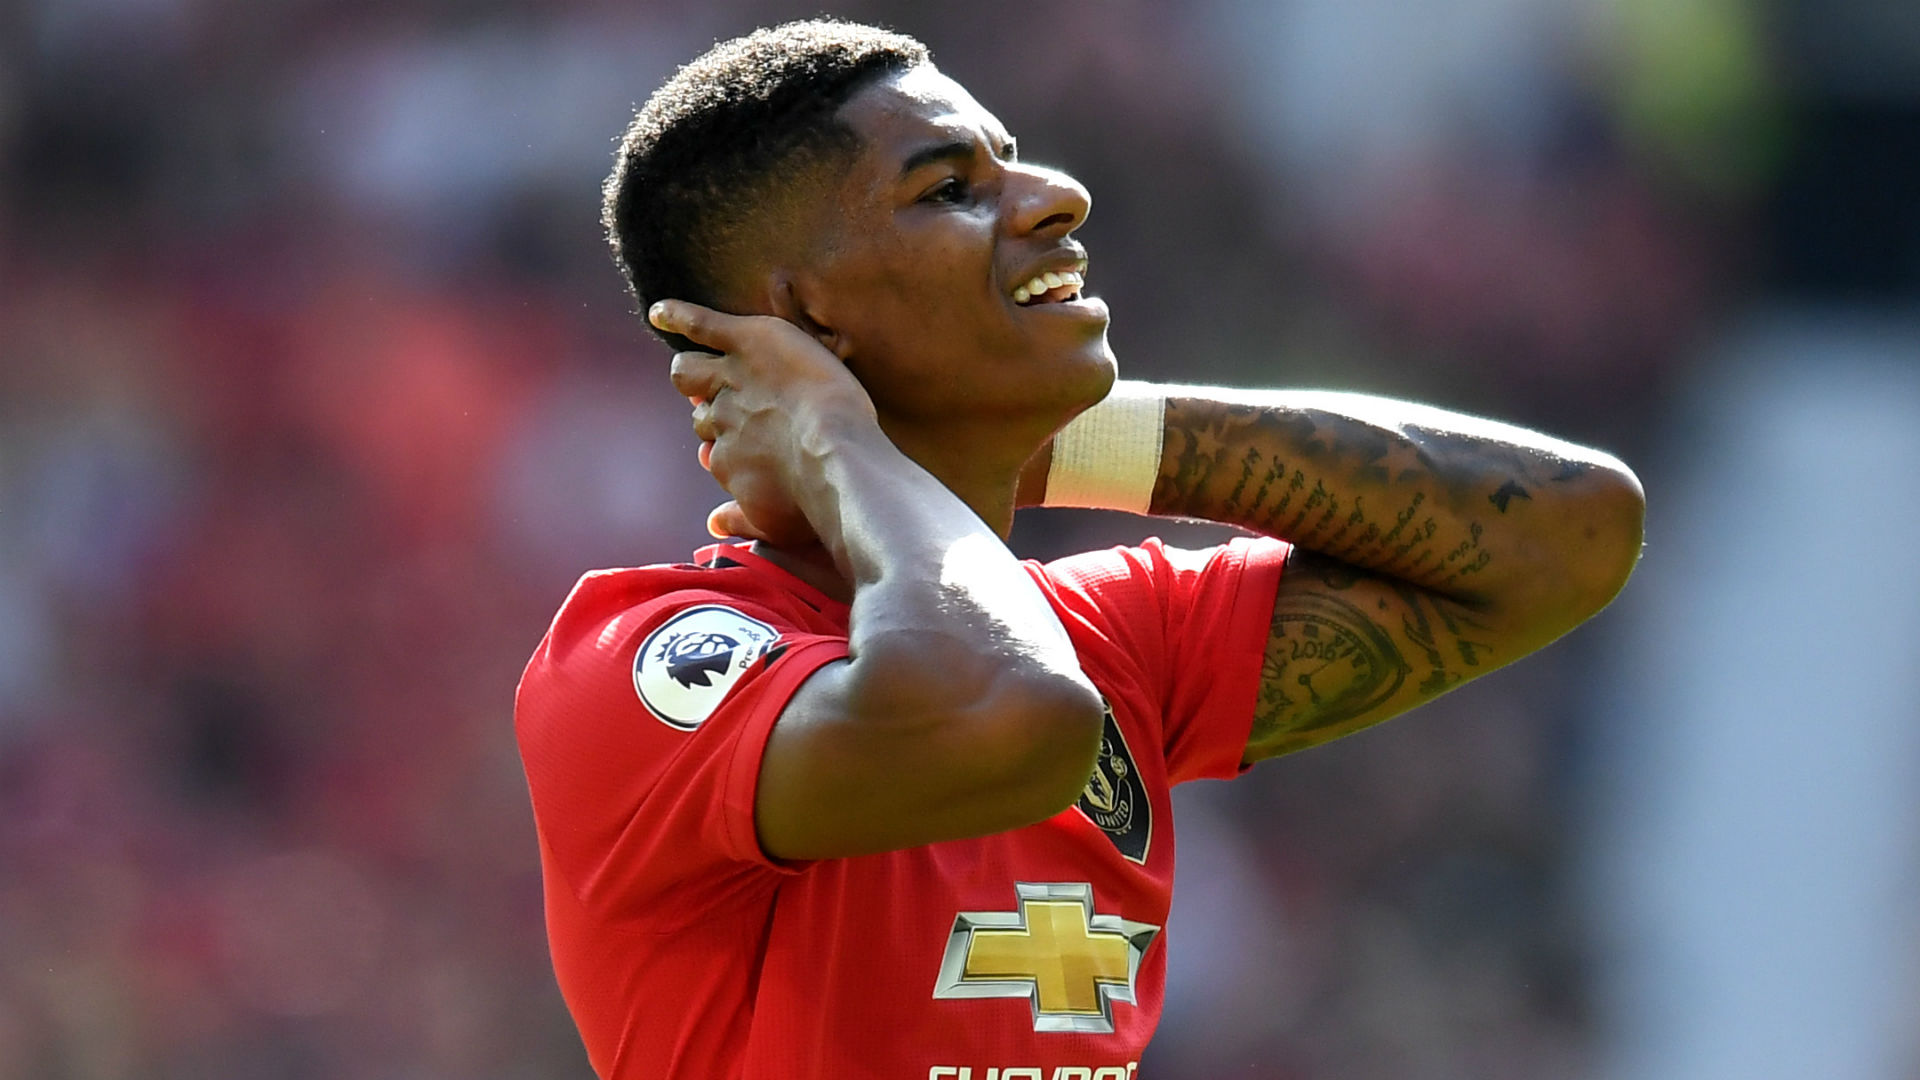 Marcus Rashford, victime aussi d'insultes racistes — Manchester United